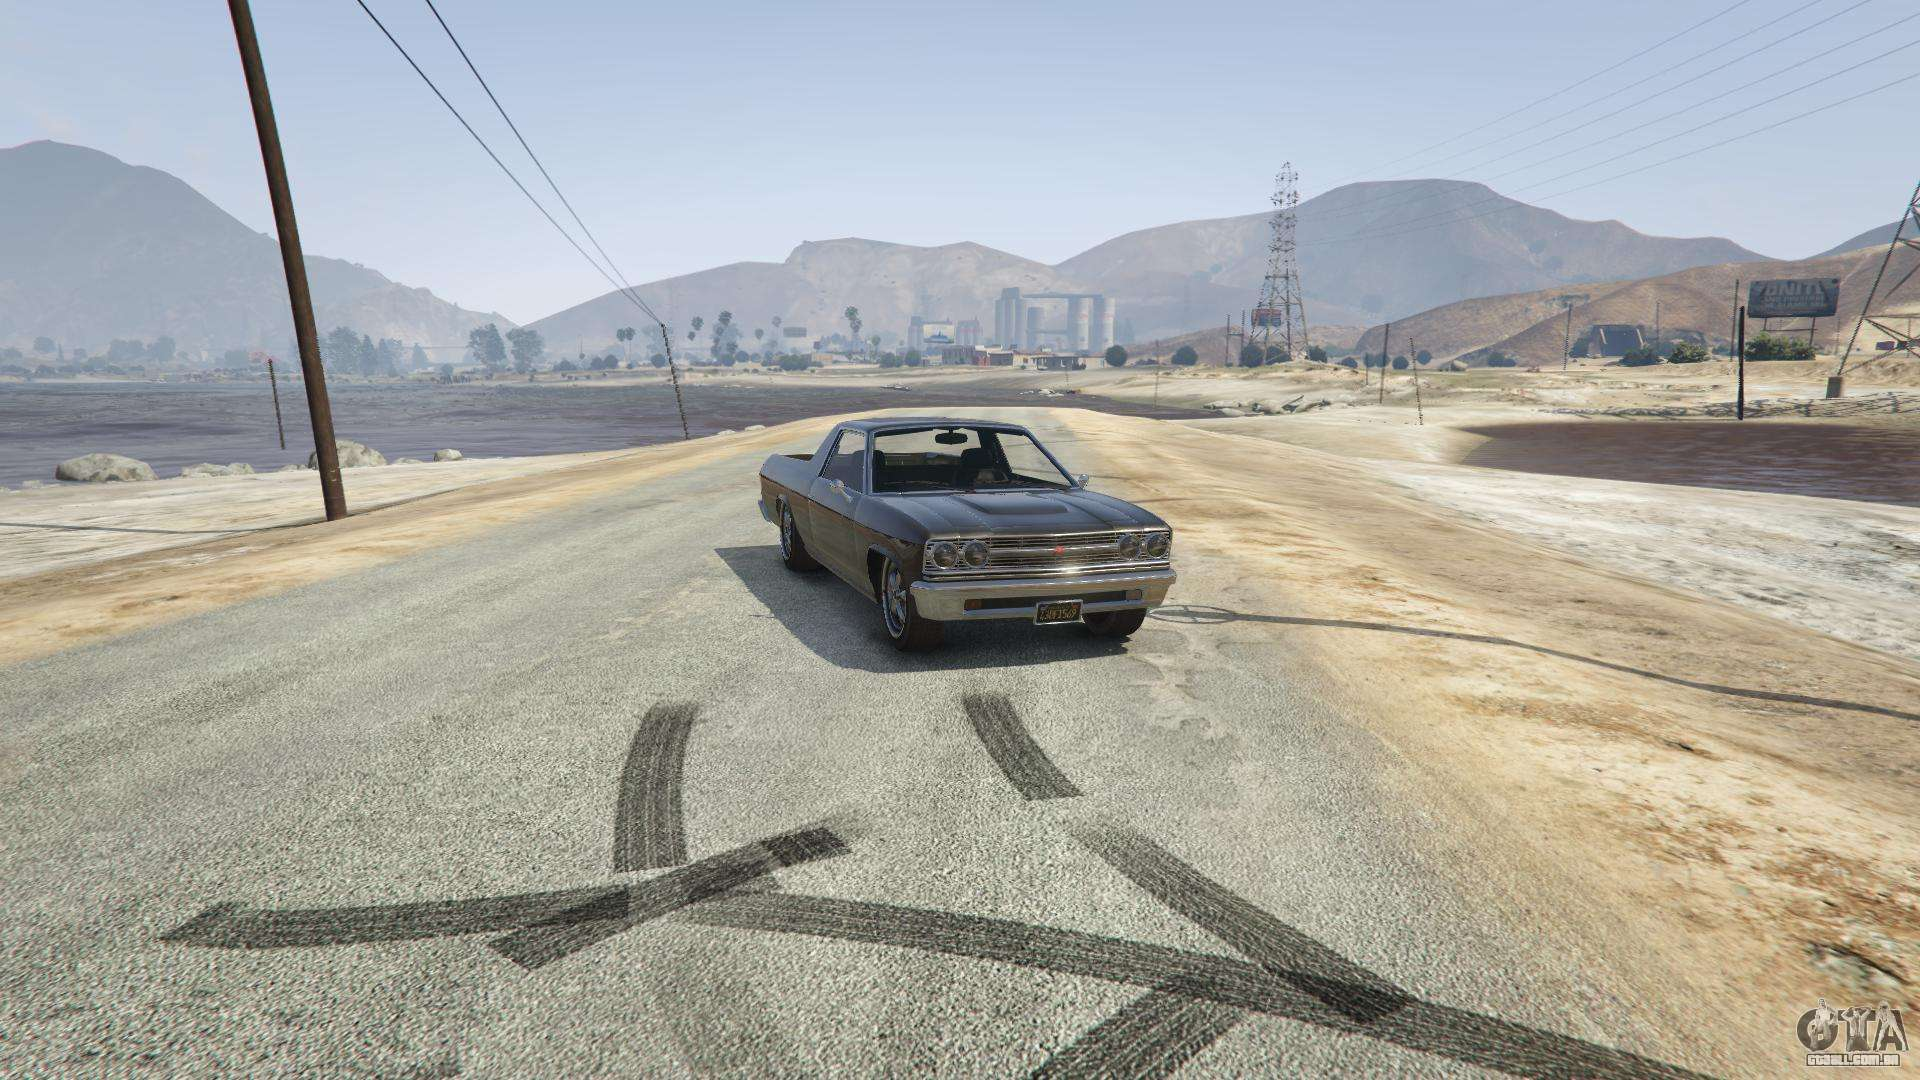 Picador de GTA 5 - vista frontal